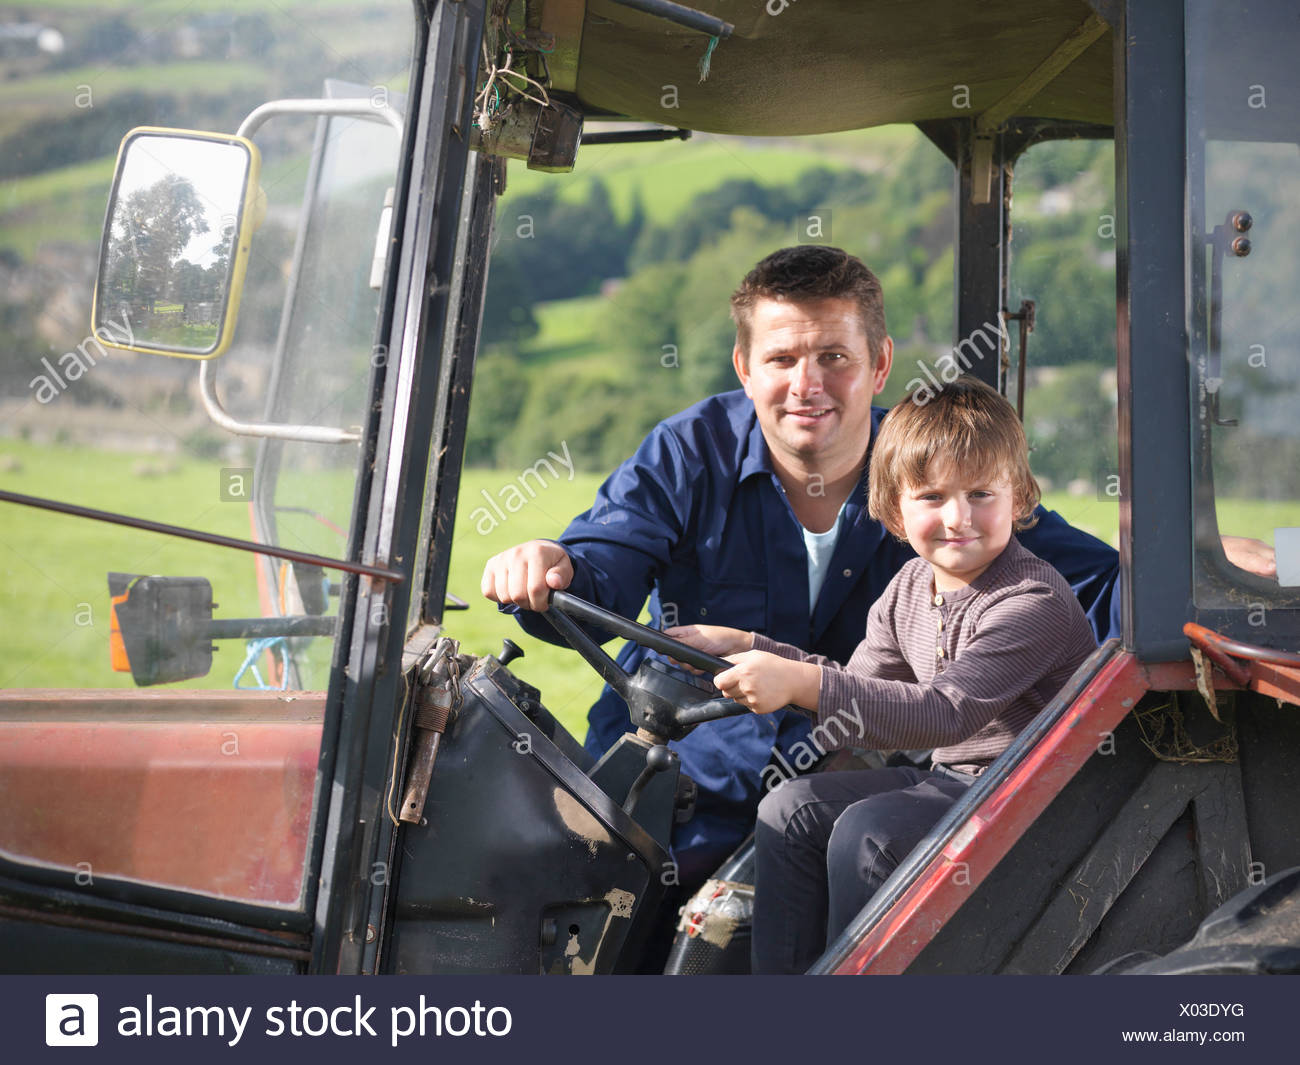 Farmer and young son in tractor in field, portrait - Stock Image